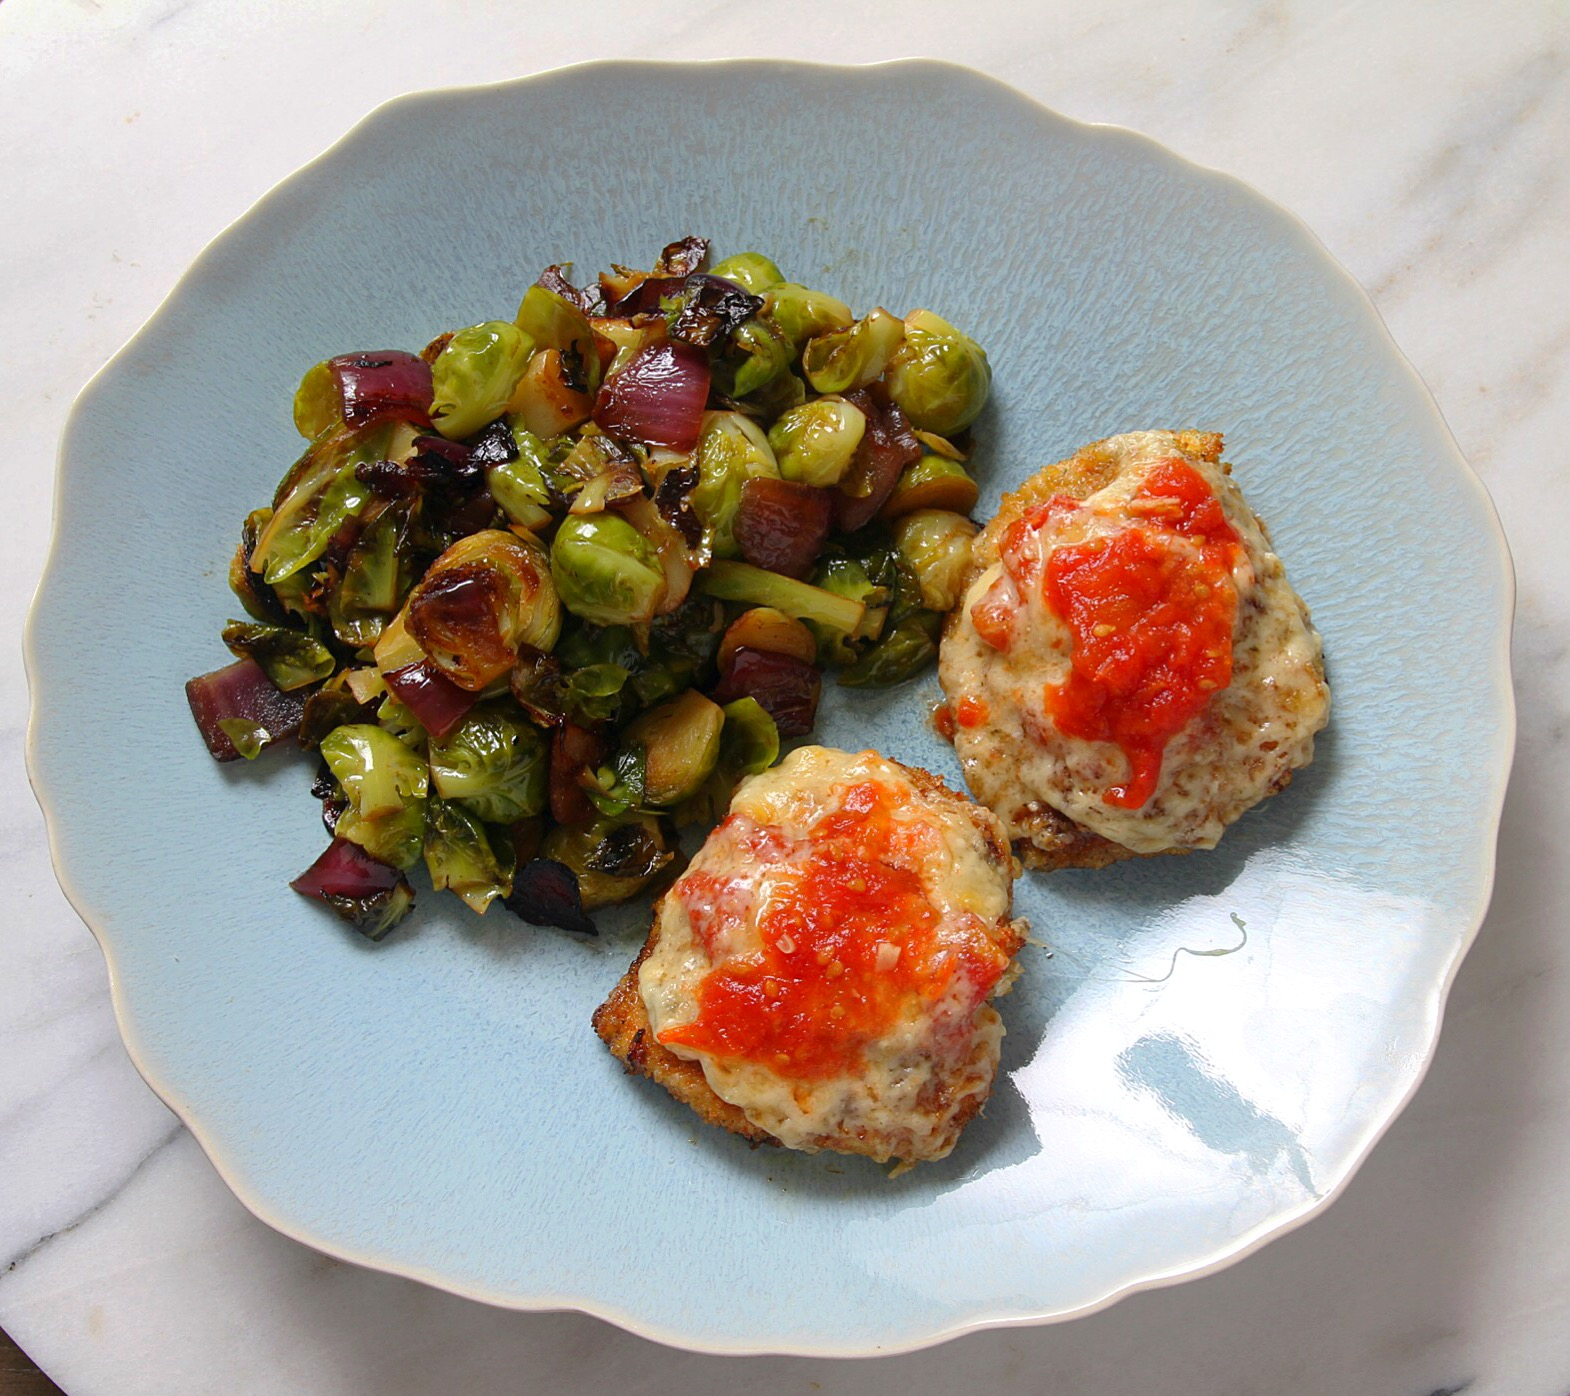 Brussels sprouts with homemade chicken Parmesan. An odd, but uniquely delicious, pairing.